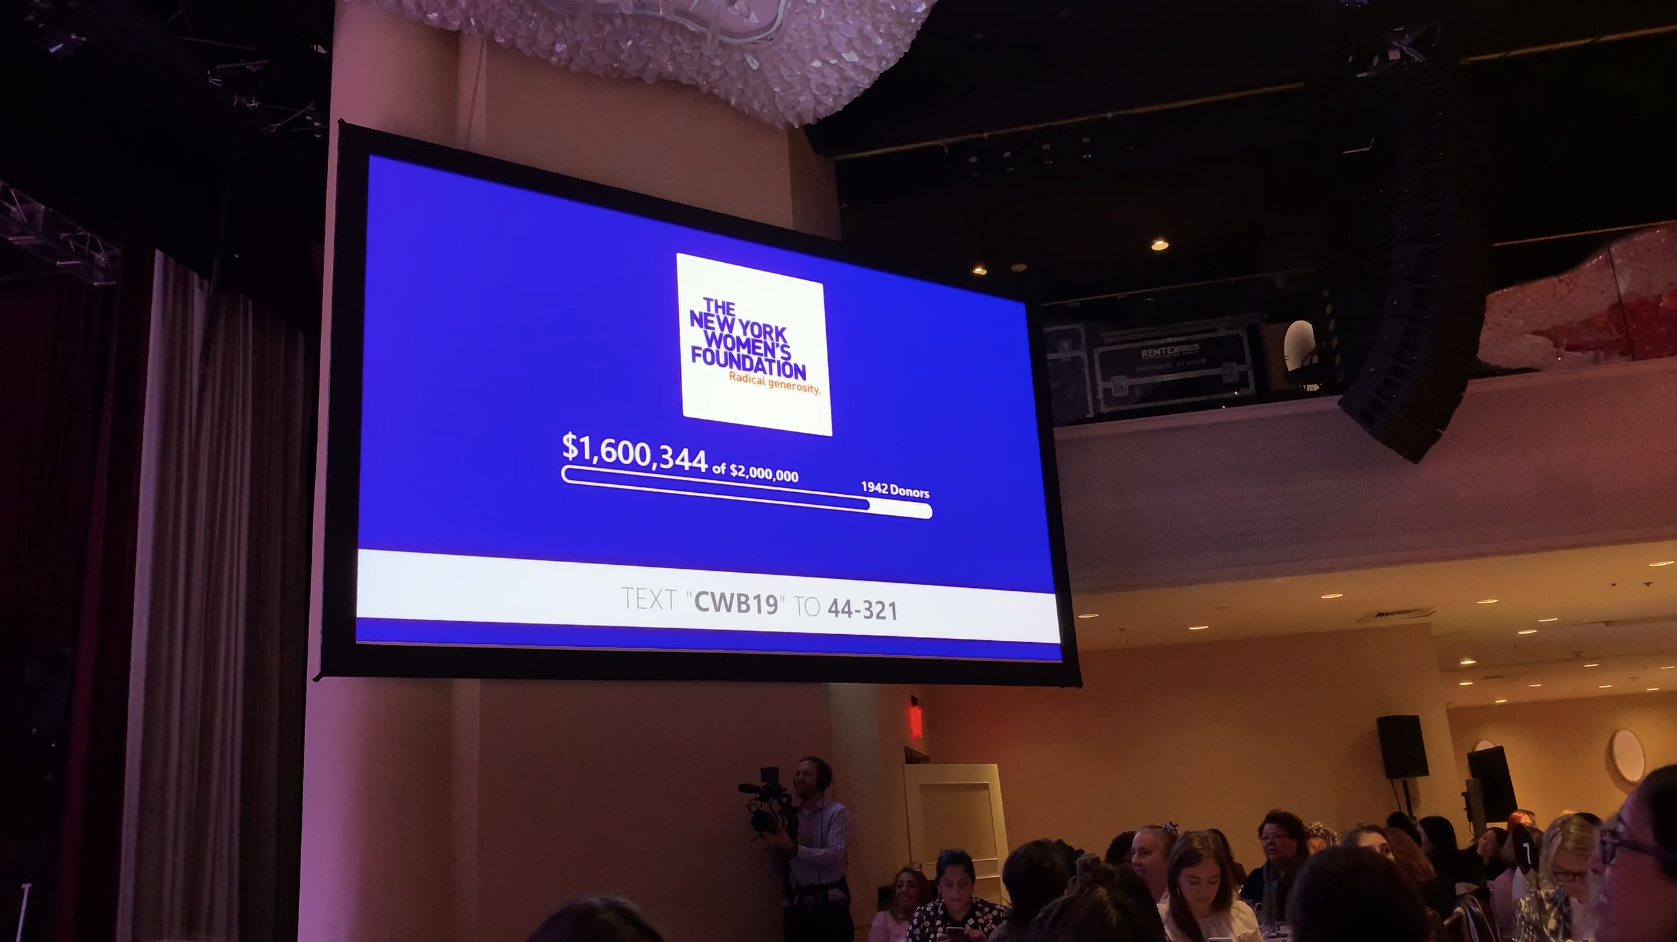 New York Women's Foundation Live Display in their Anual Breakfast 2019